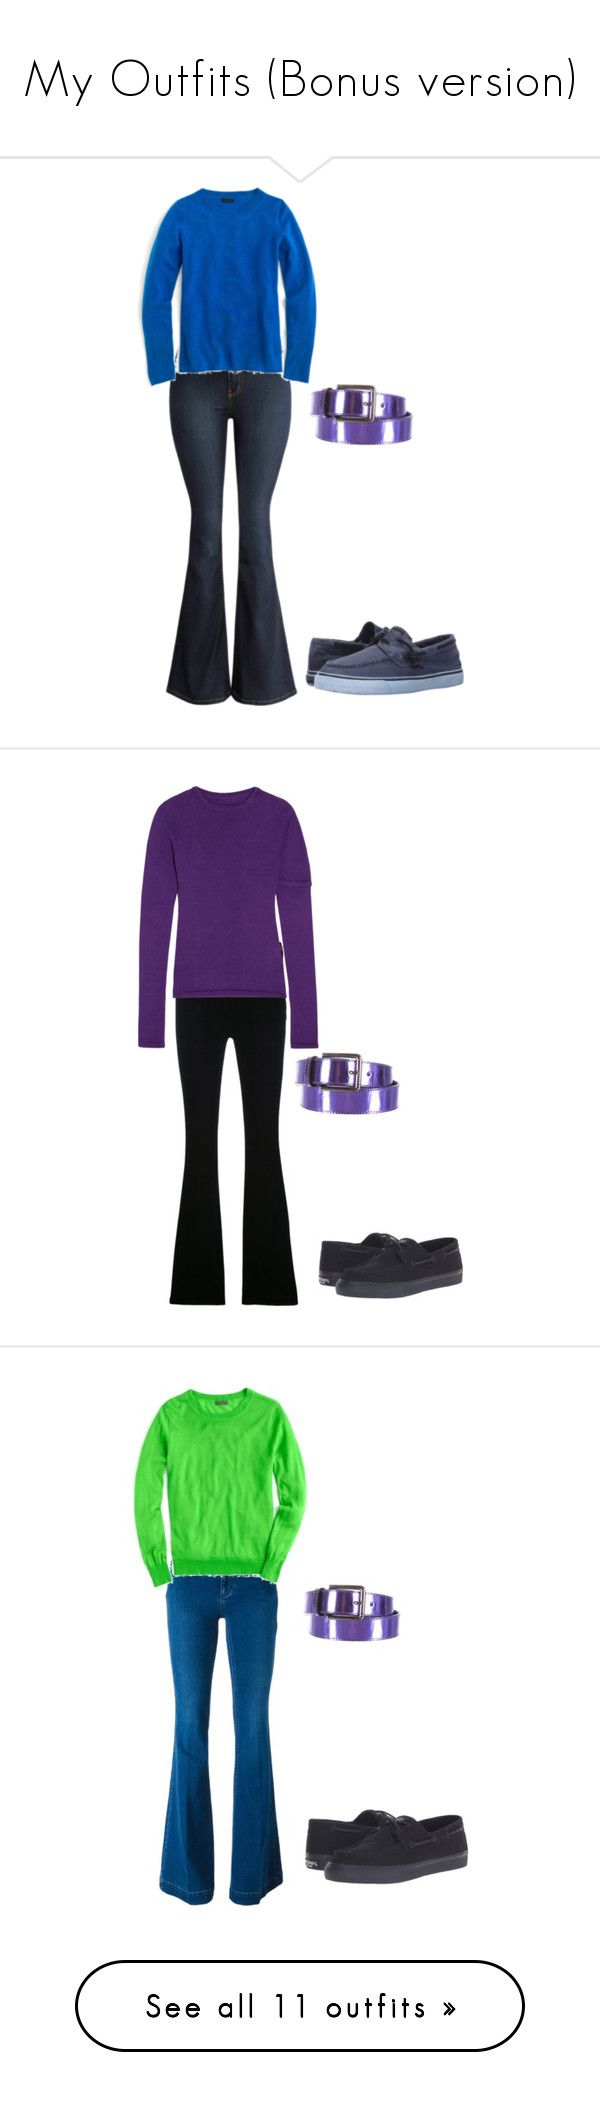 """""""My Outfits (Bonus version)"""" by sierra-ivy on Polyvore featuring Sperry, J.Crew, Ports 1961, Frame, Jacquemus, STELLA McCARTNEY, shoes, sneakers, nike and chaussures"""